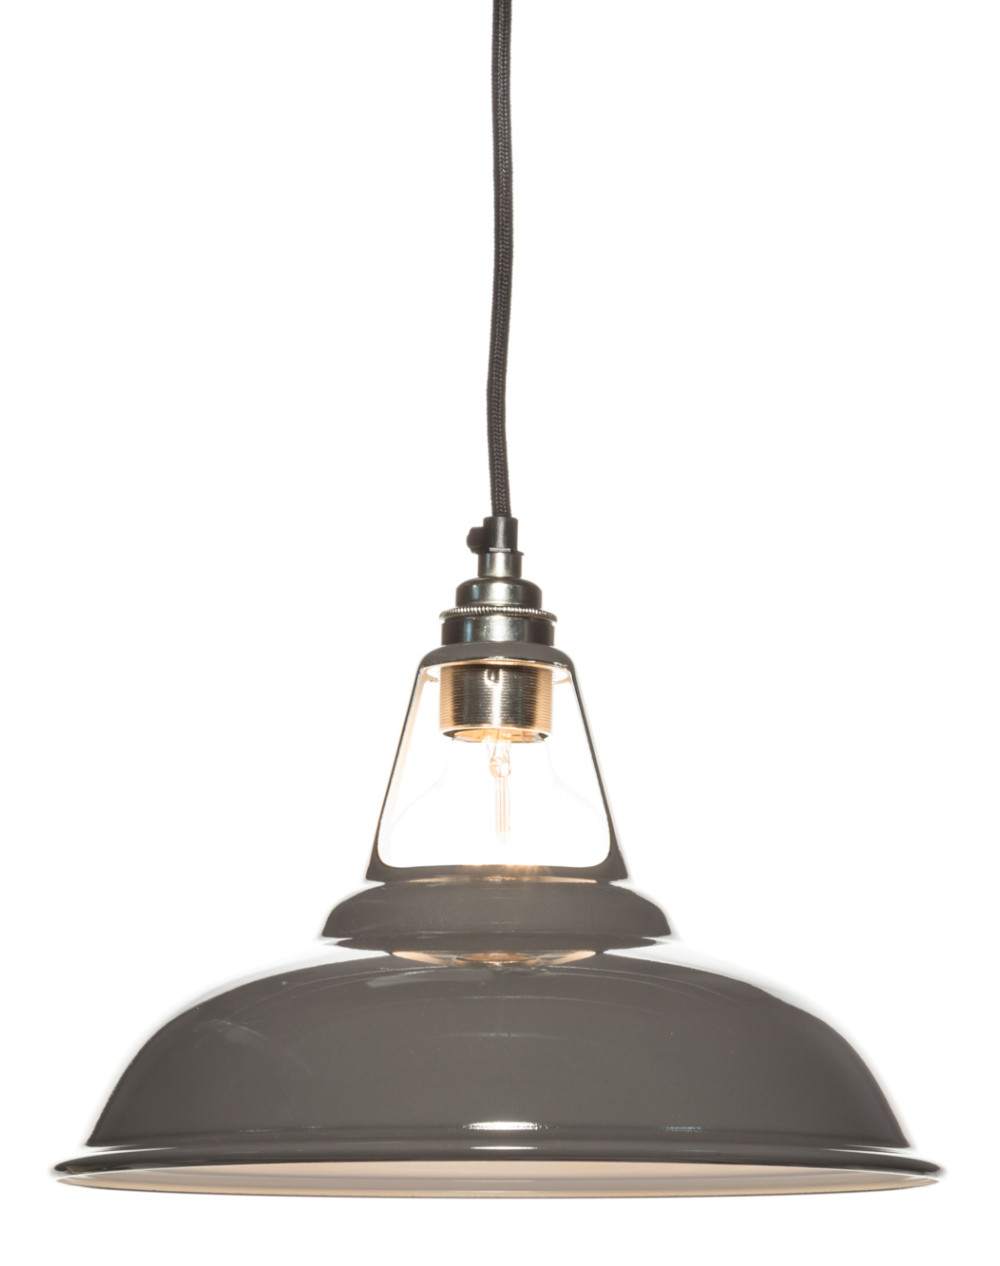 light shades of gray enamel Coolicon lampshade |  280mm ZJBQLFP